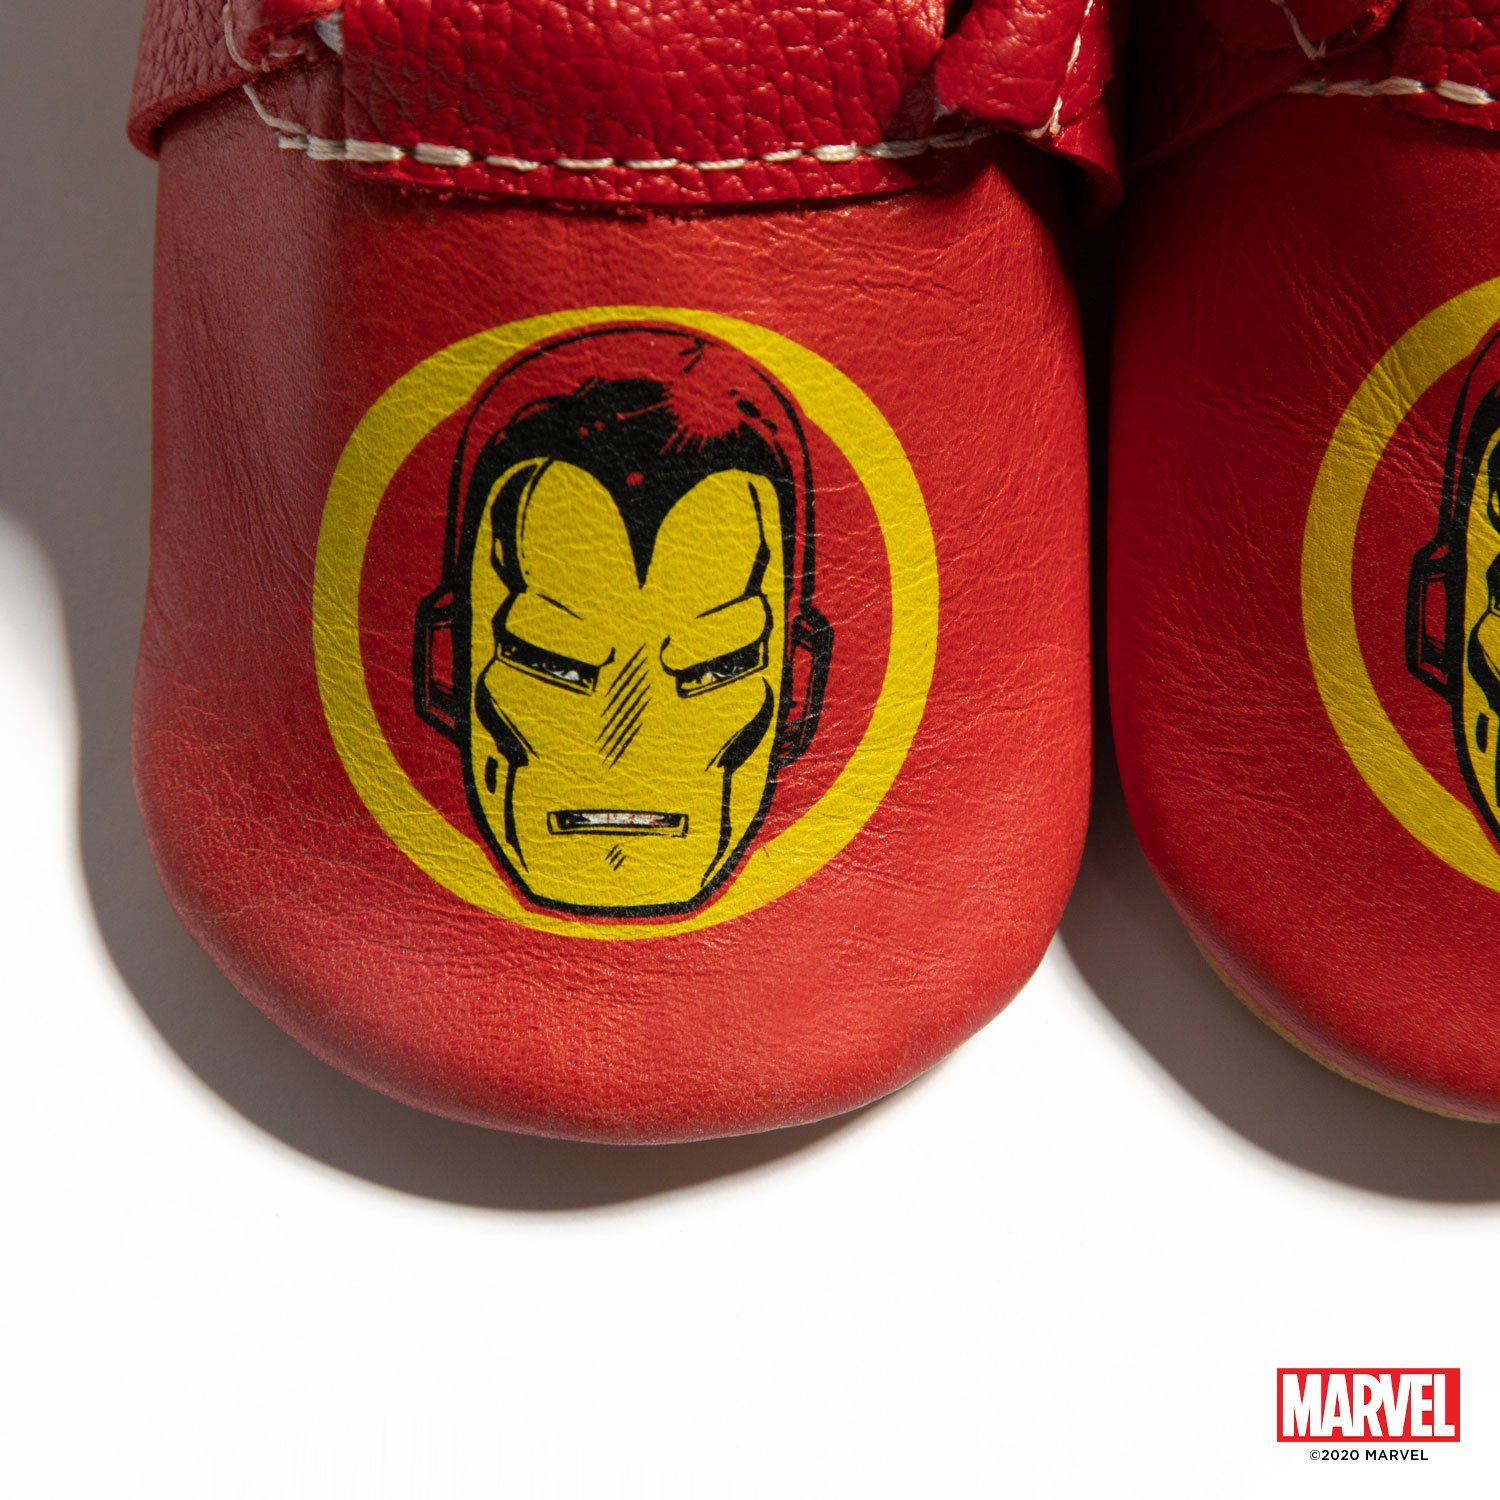 I Am Iron Man City Mocc Mini Sole City Moccs mini sole